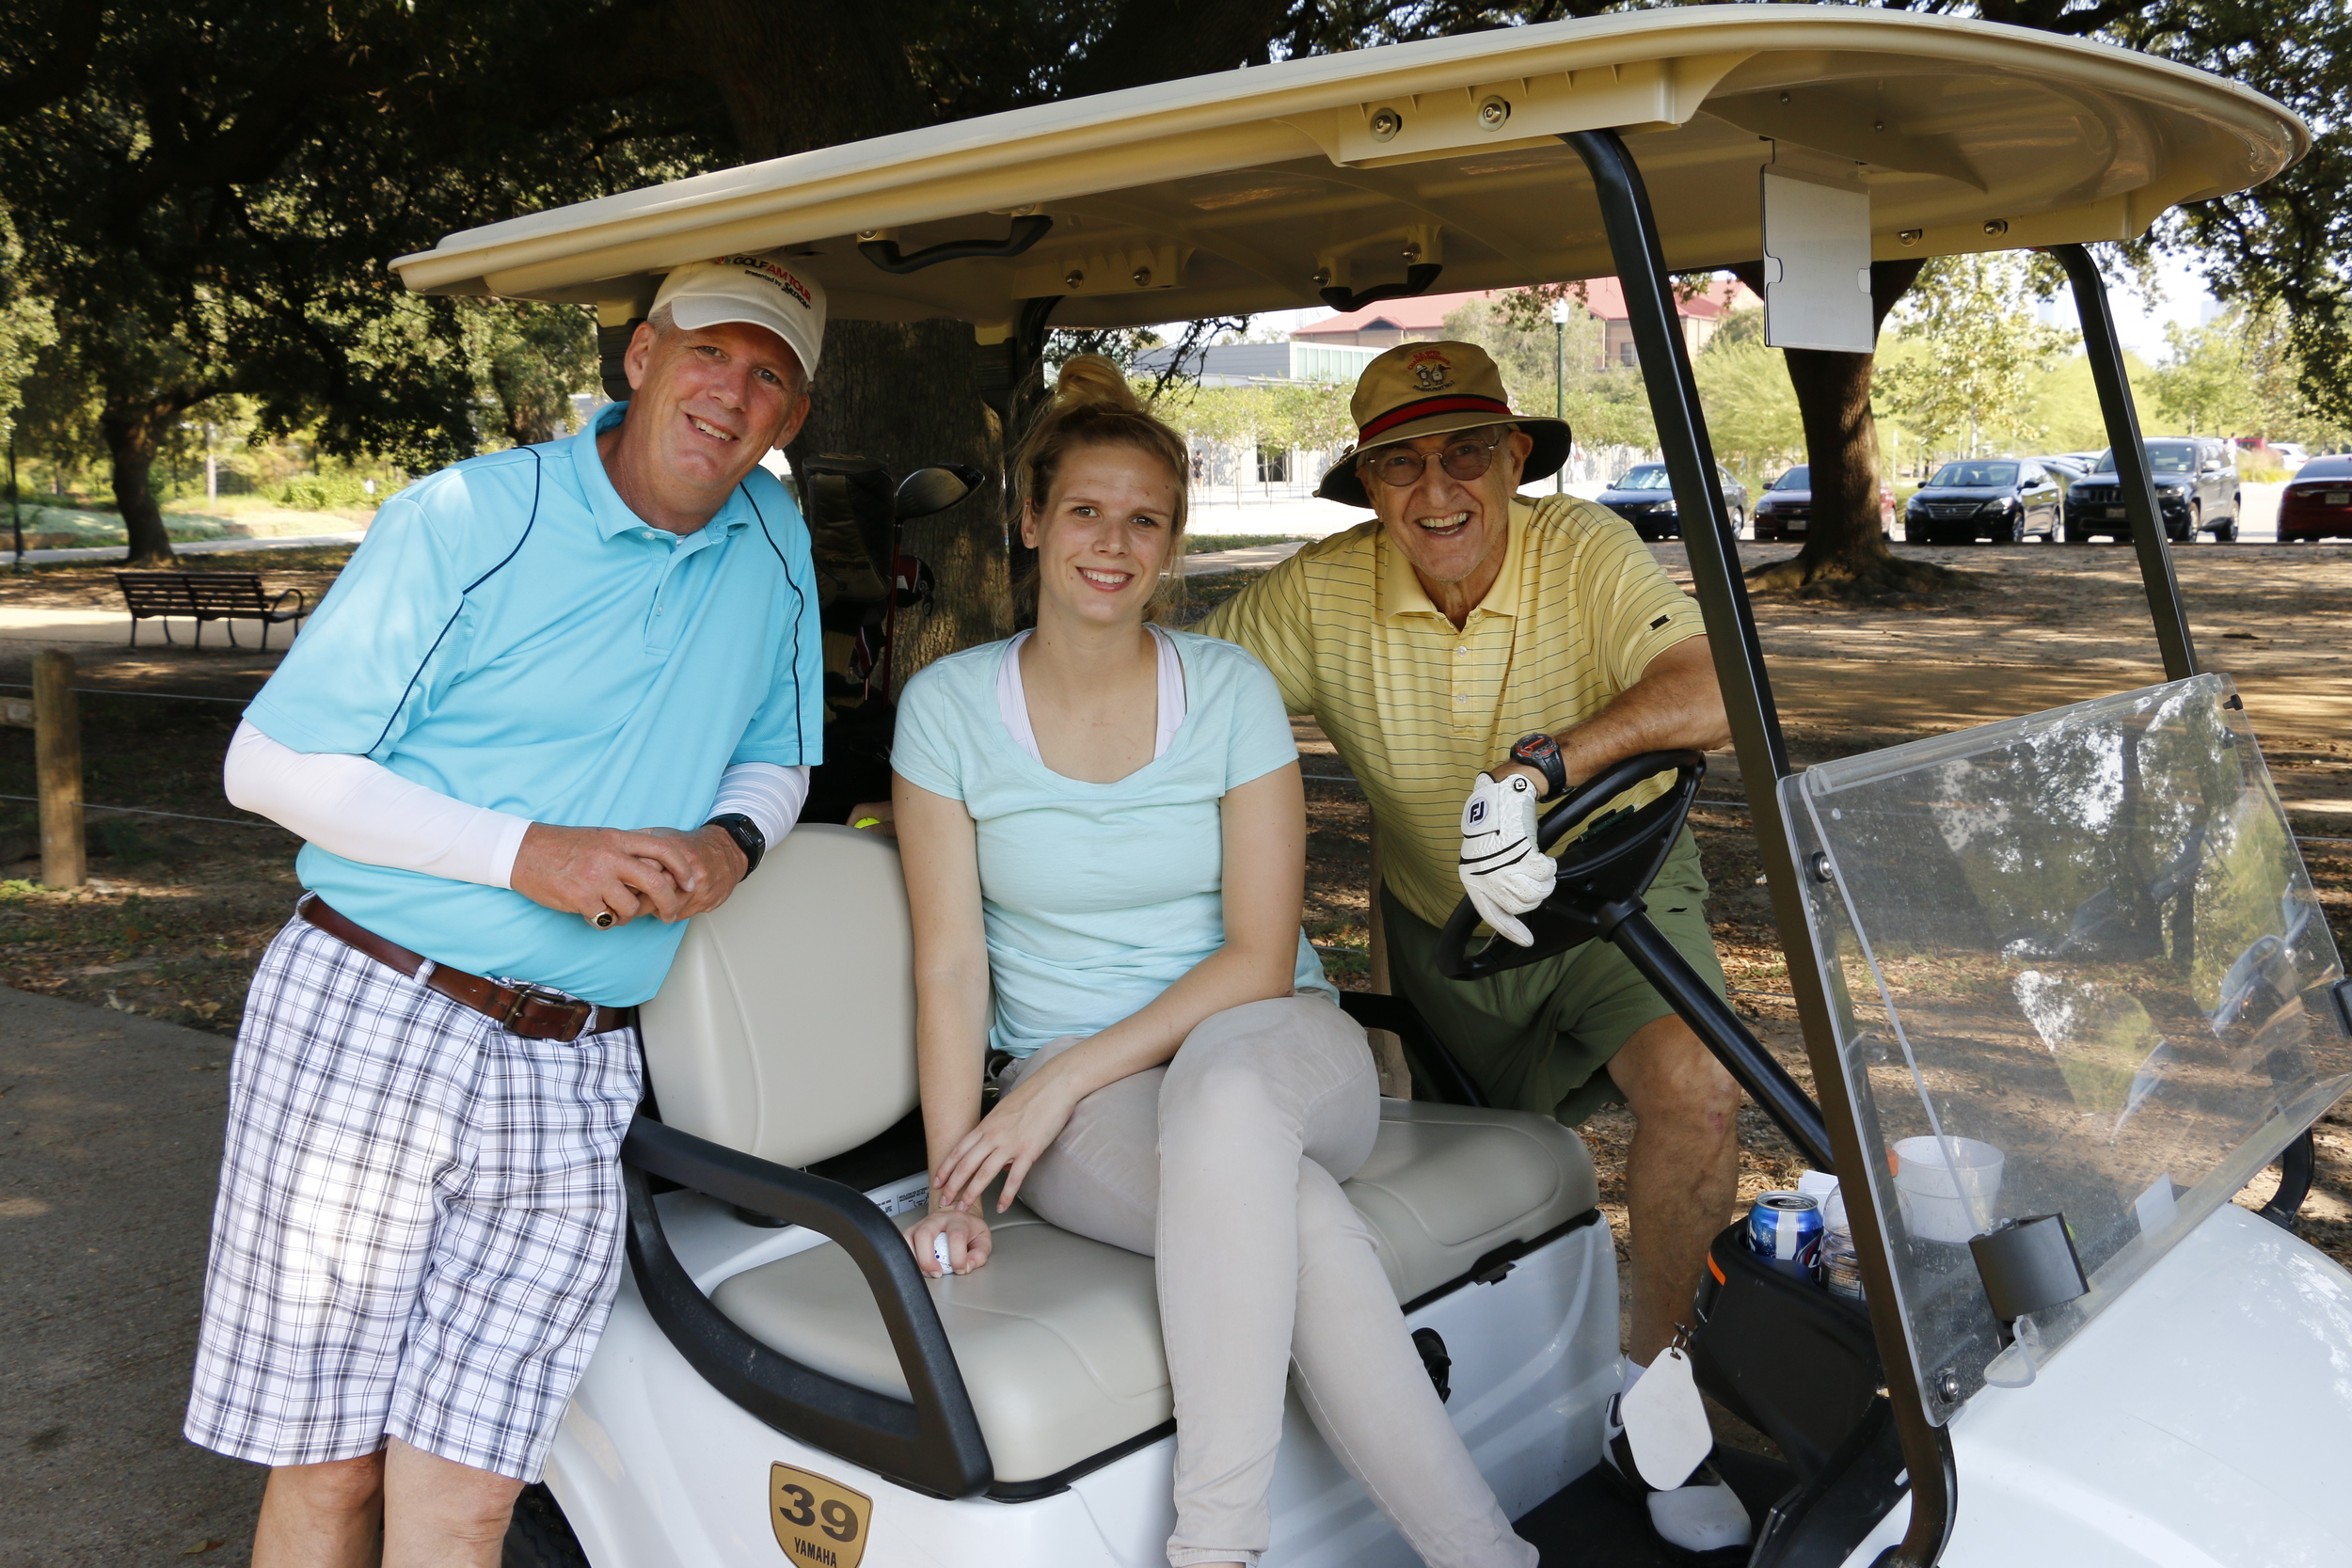 ASDA_golf_tournament_2015_0127.JPG